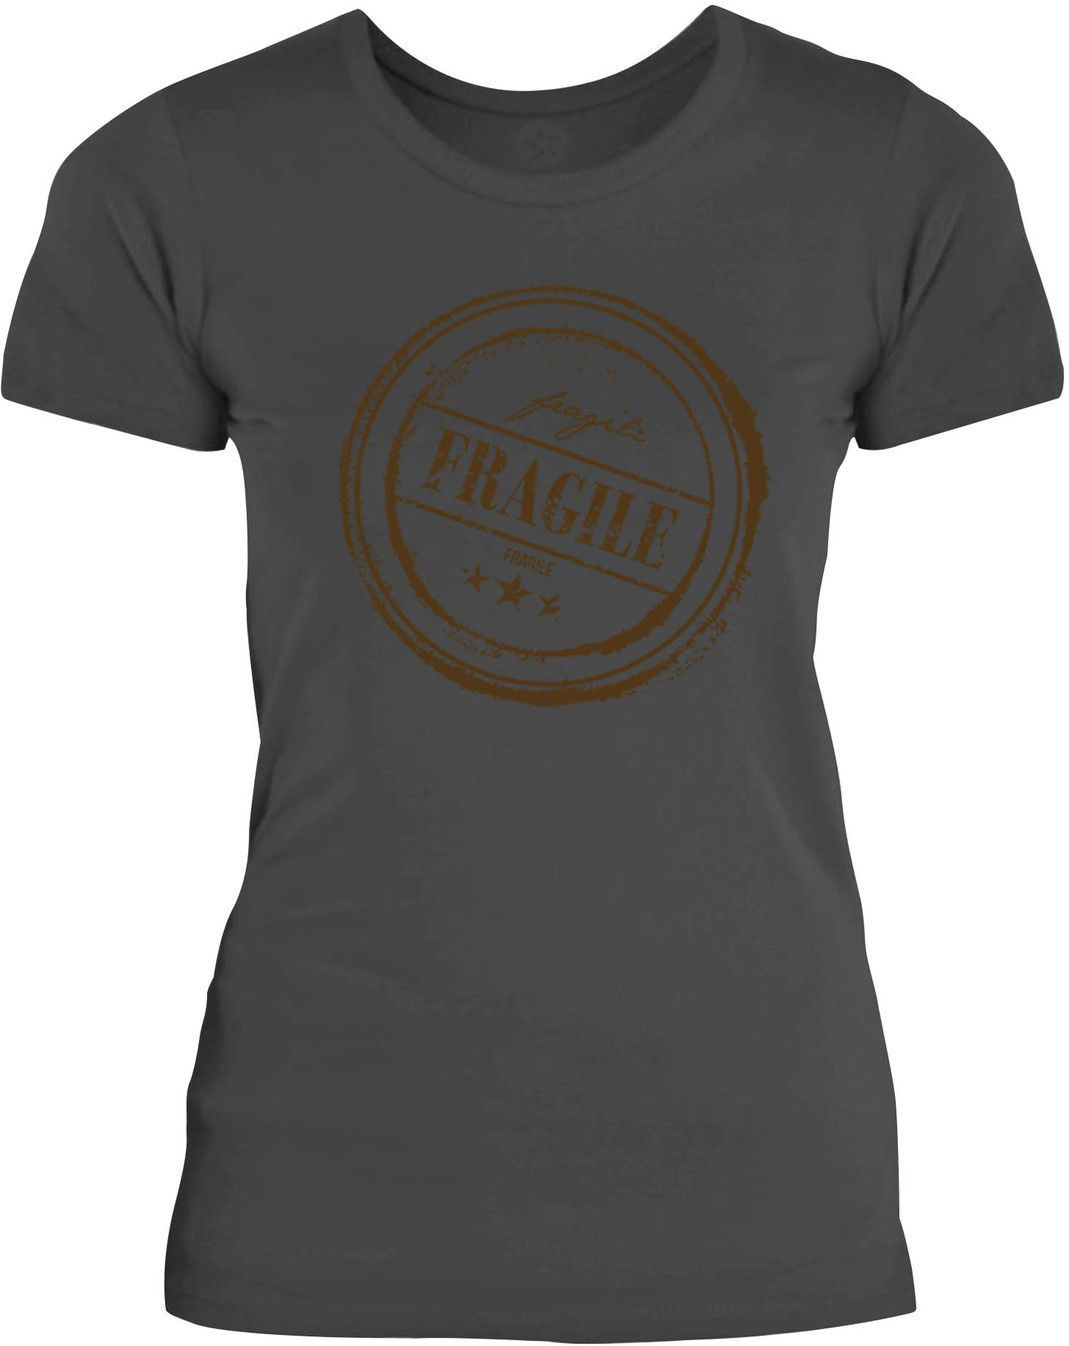 Big Texas Vintage Fragile Stamp (Brown) Womens Fine Jersey T-Shirt